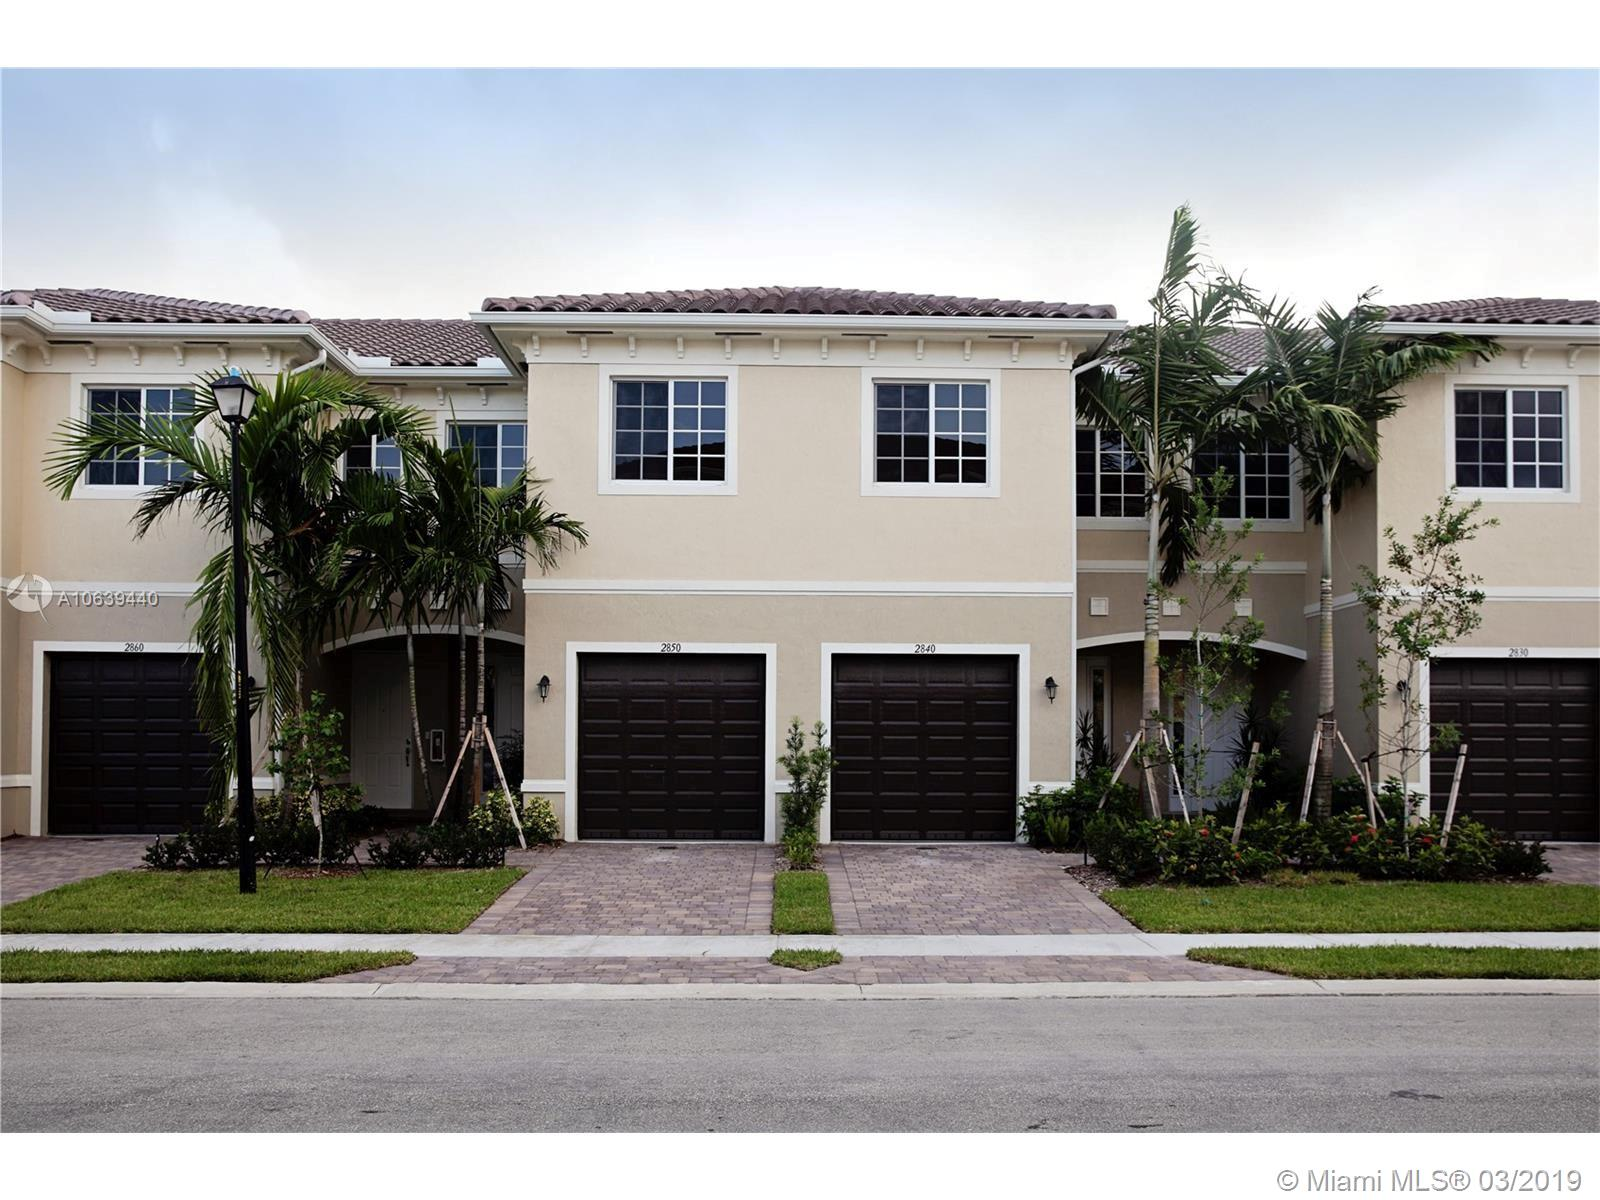 2735 S W 81st Ter #2731 For Sale A10639440, FL